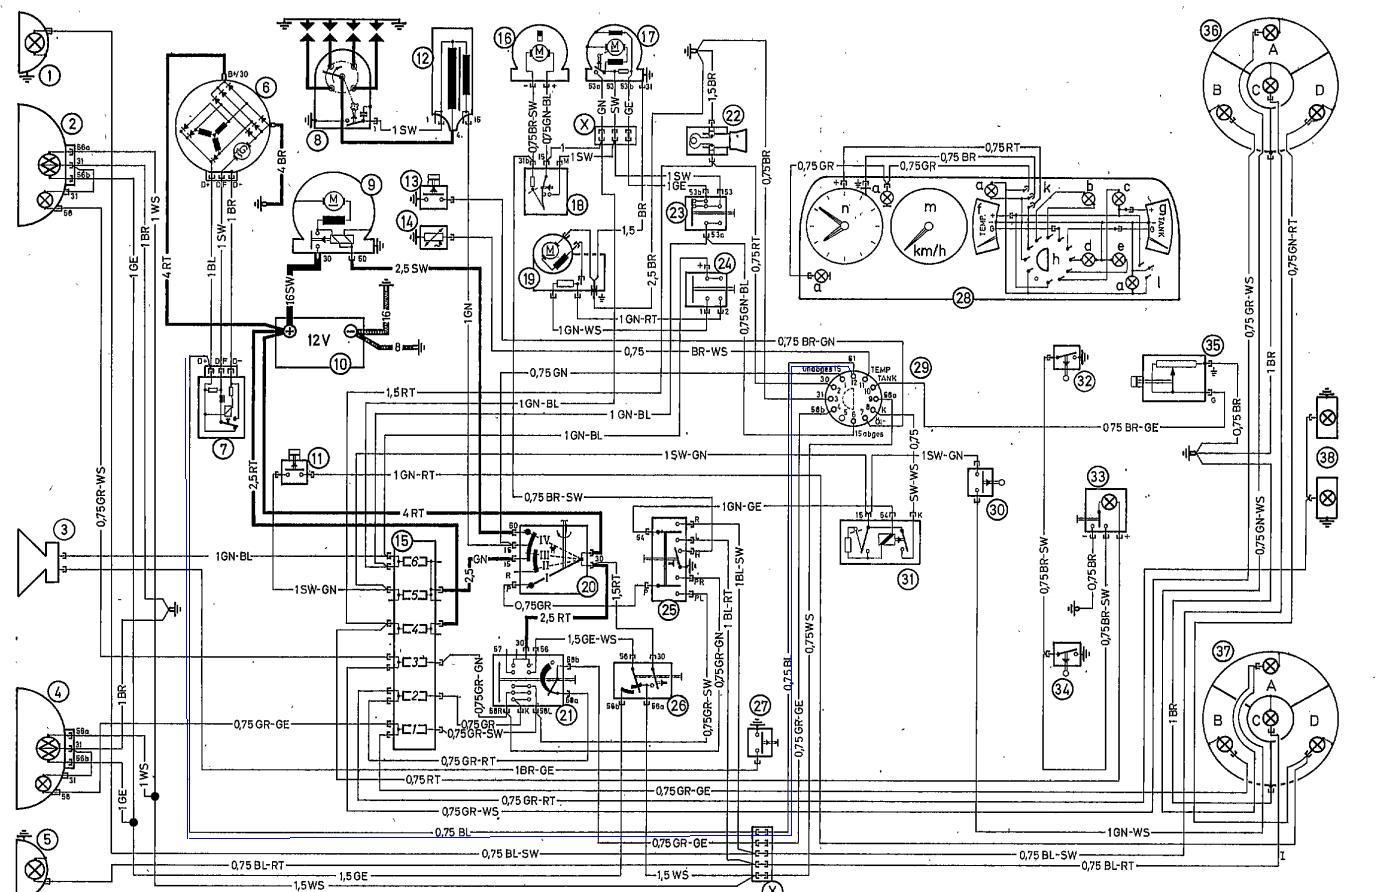 Bmw 2002 Wiring Diagram Anything Diagrams General Stereo Engine Swap Electric Woes Battery Not Charging Rh Bmw2002faq Com 1976 X5 Radio